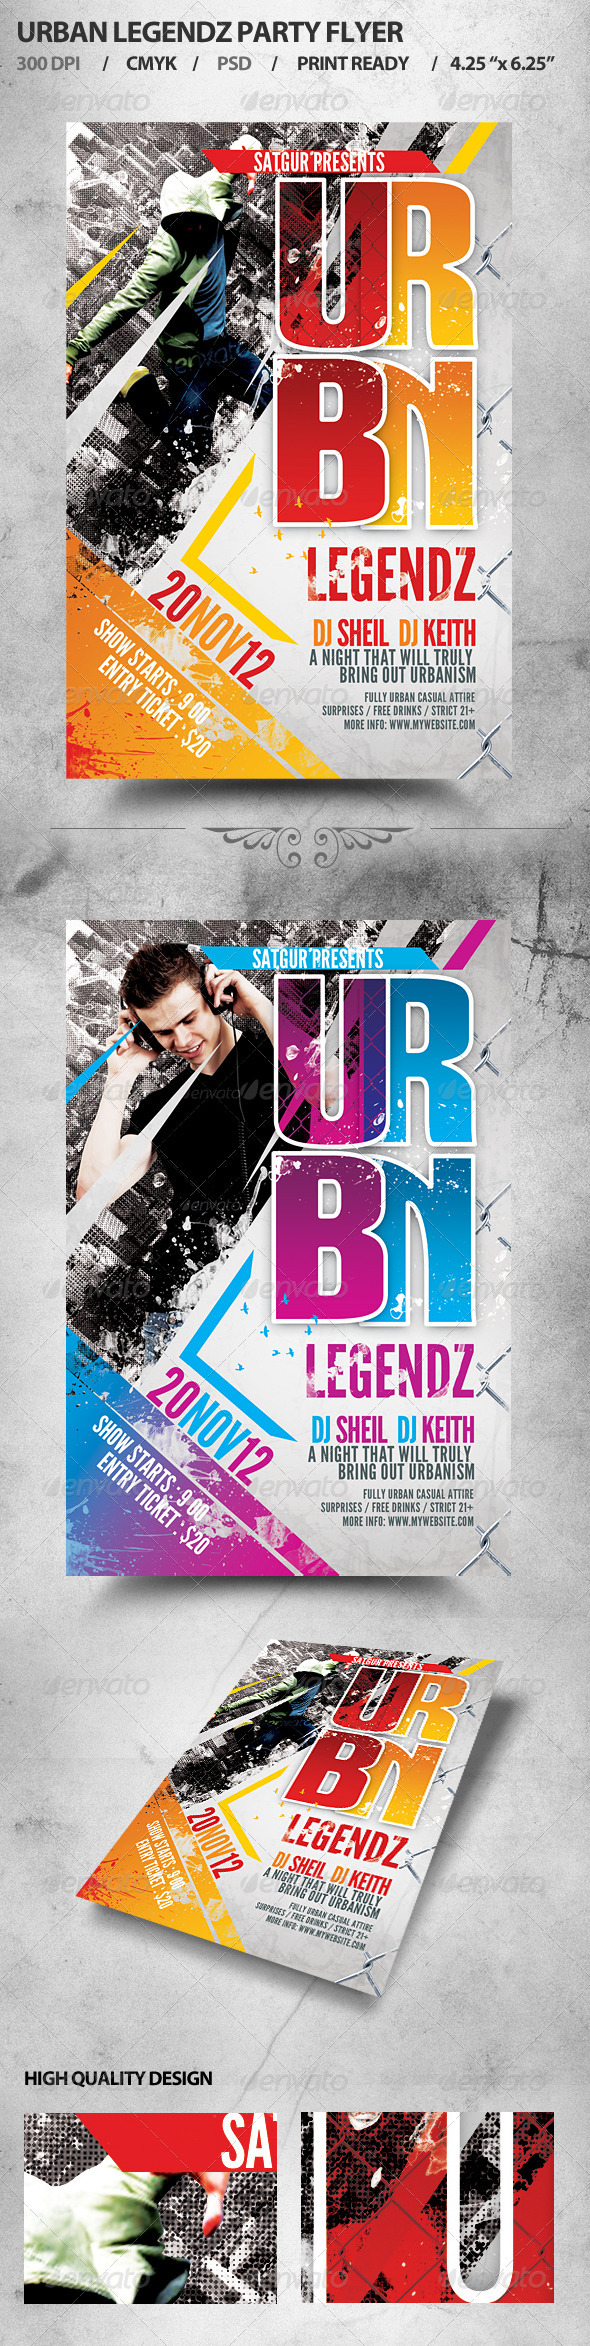 Urban Legendz Party Flyer - Clubs & Parties Events